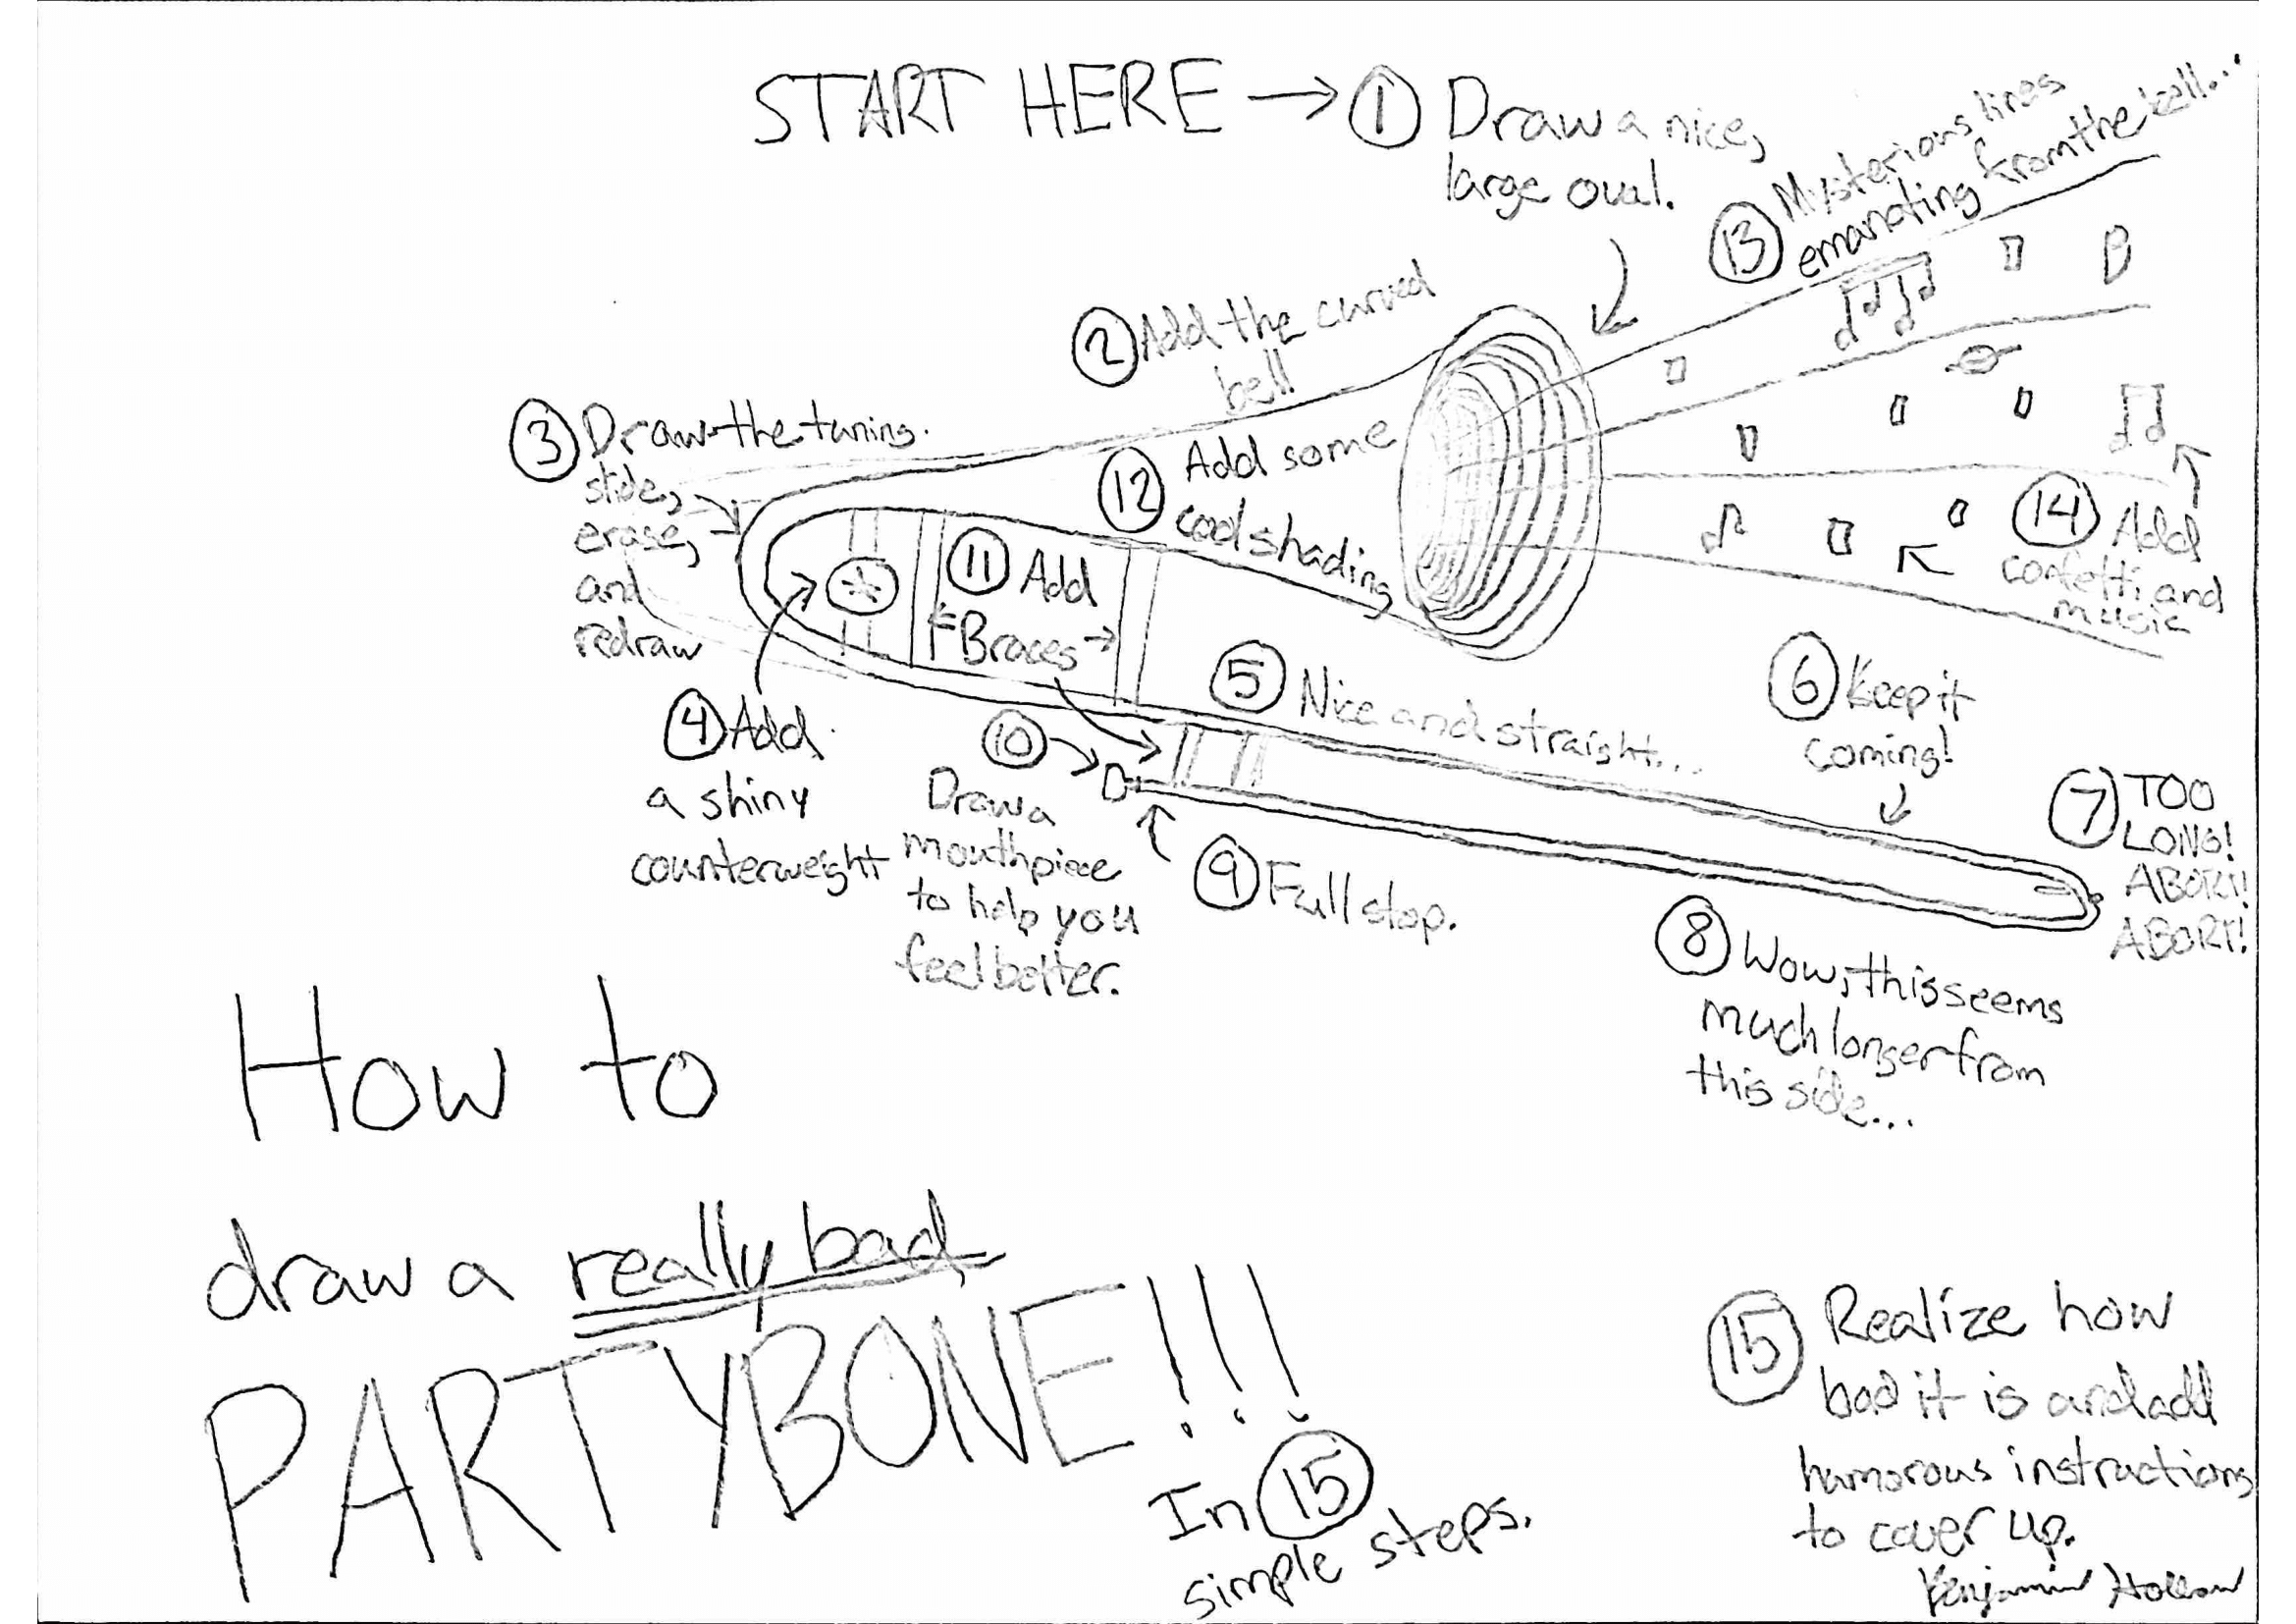 How to Draw a Really Bad Partybone